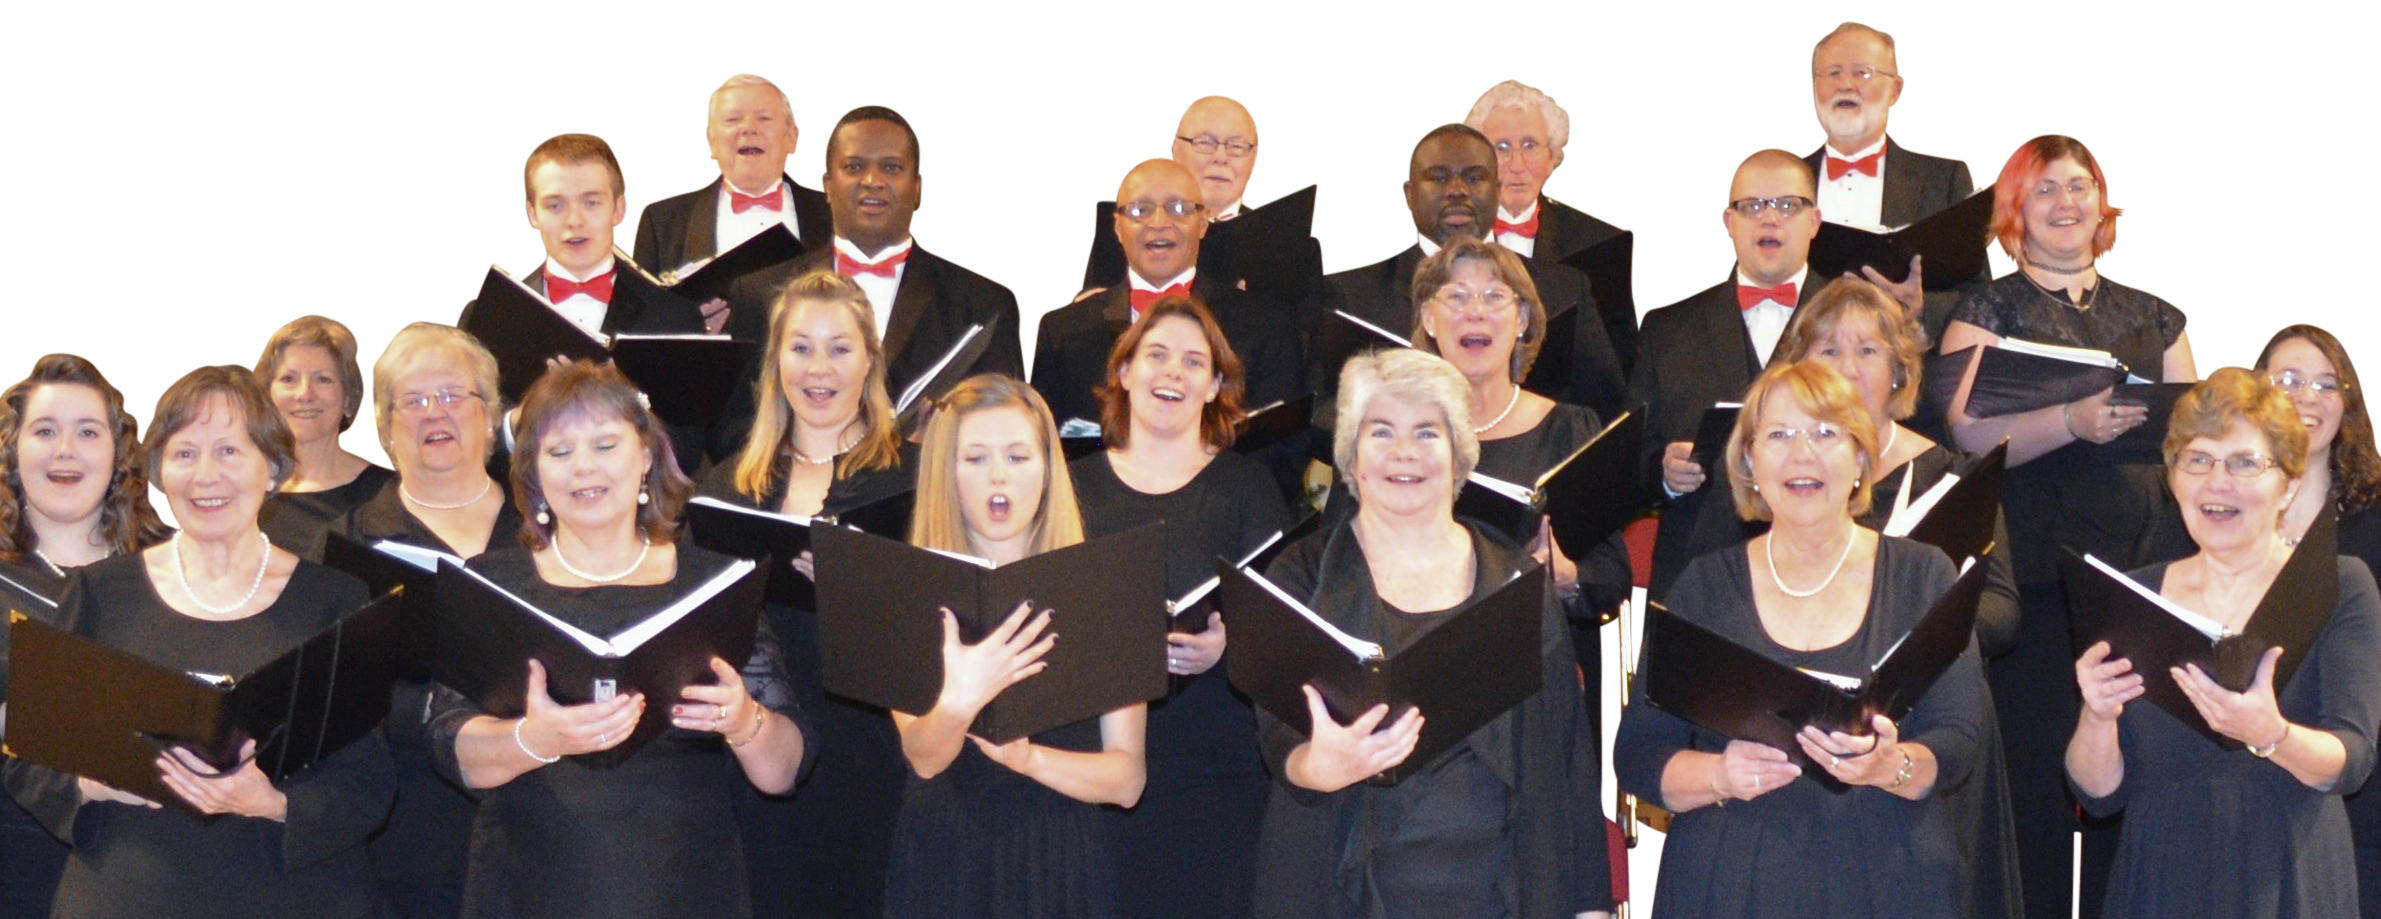 Harford Choral Society in MD - Join our Chorus